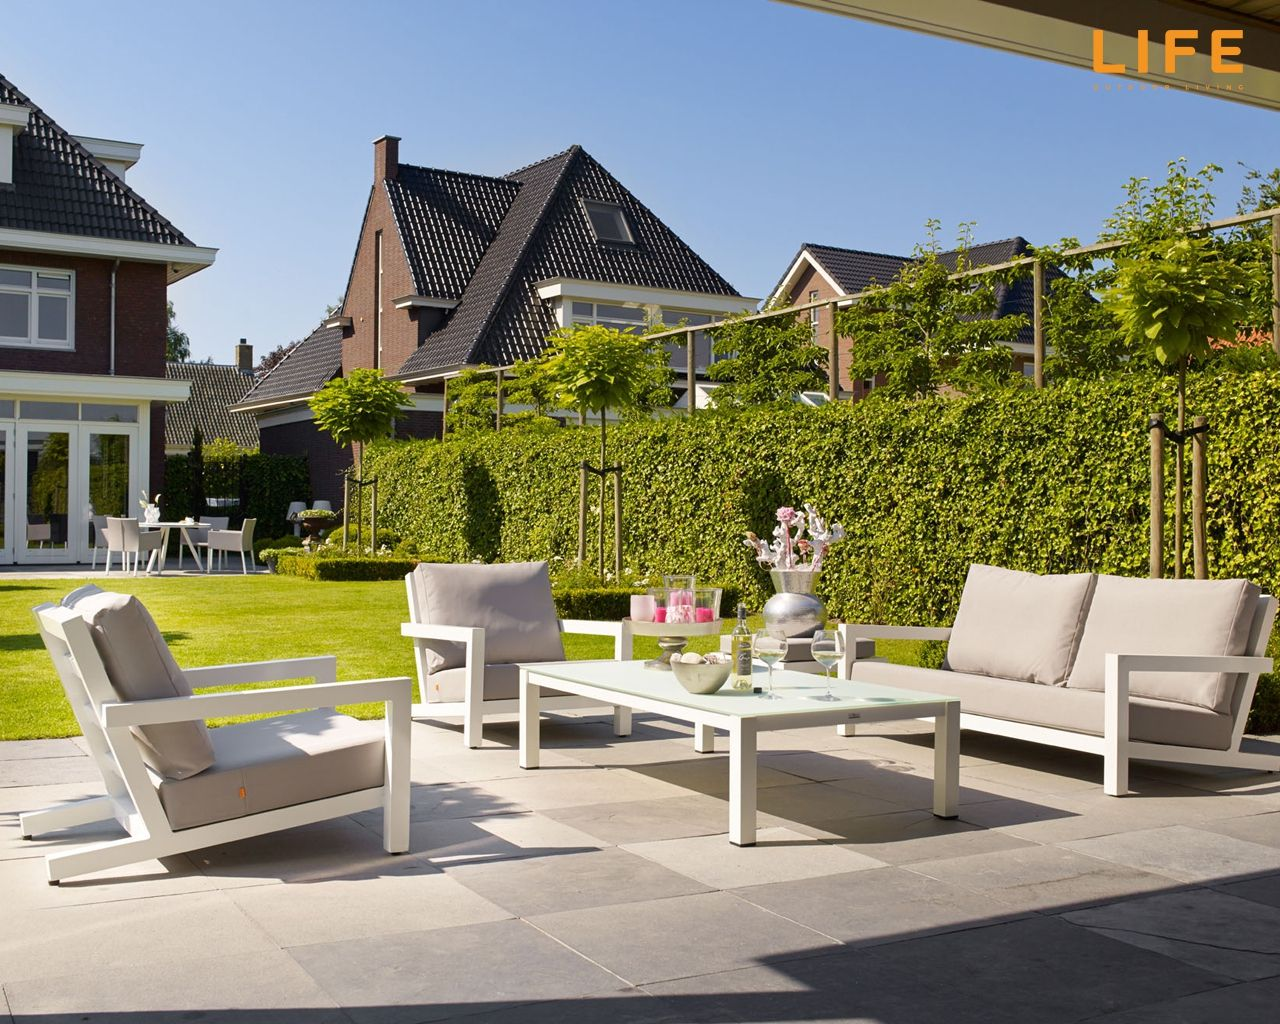 High Quality Lounge Set Block White | Garden Furniture Collection | LIFE Outdoor Living Part 26